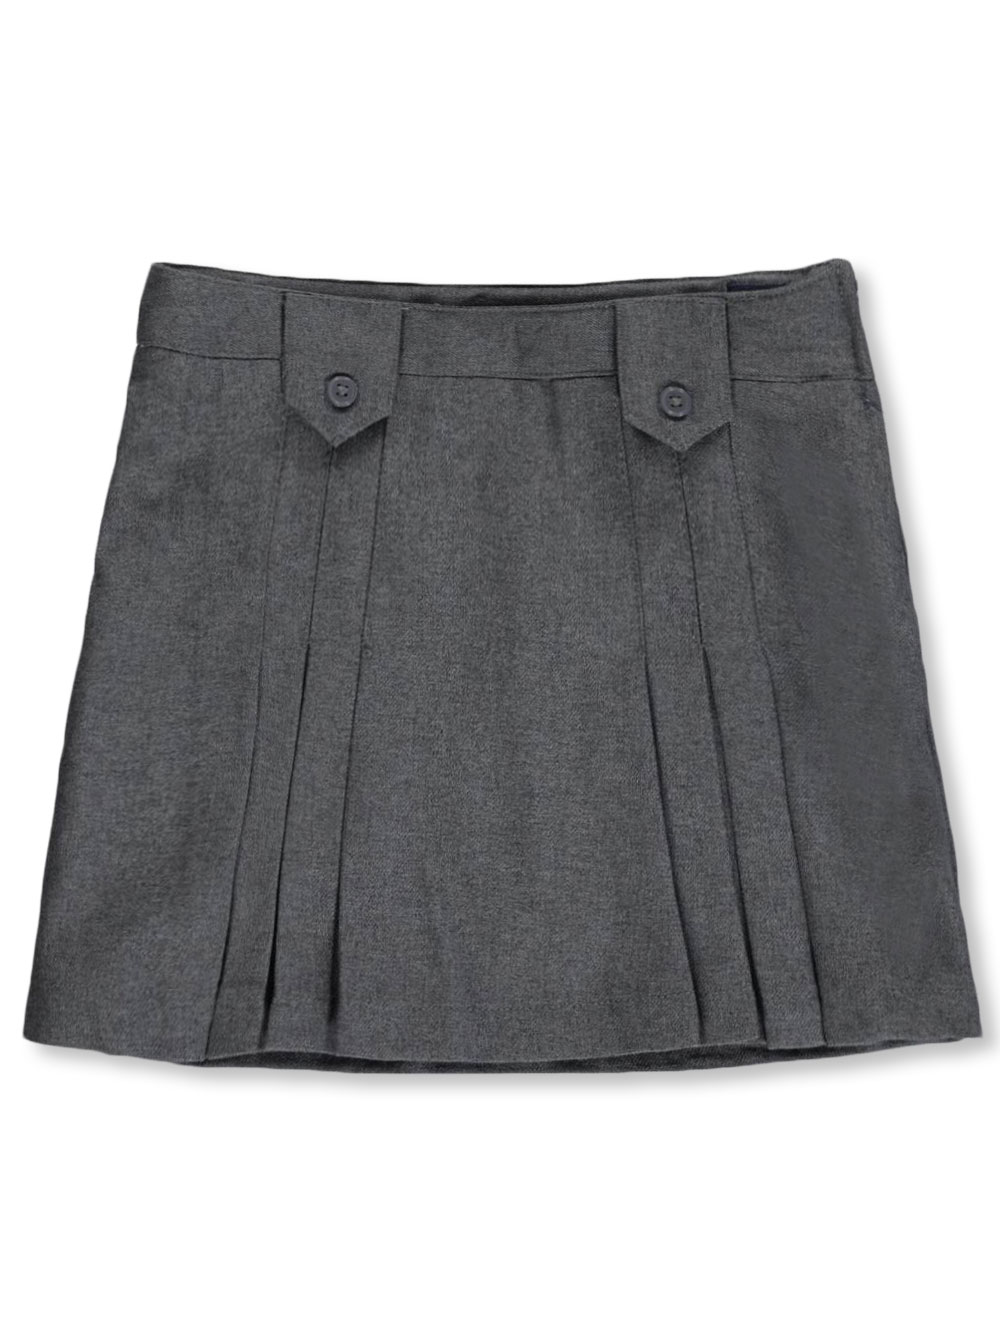 French Toast School Uniform Little Girls' Pleat and Tab Skirt (Sizes 4 - 6X) - gray, 6